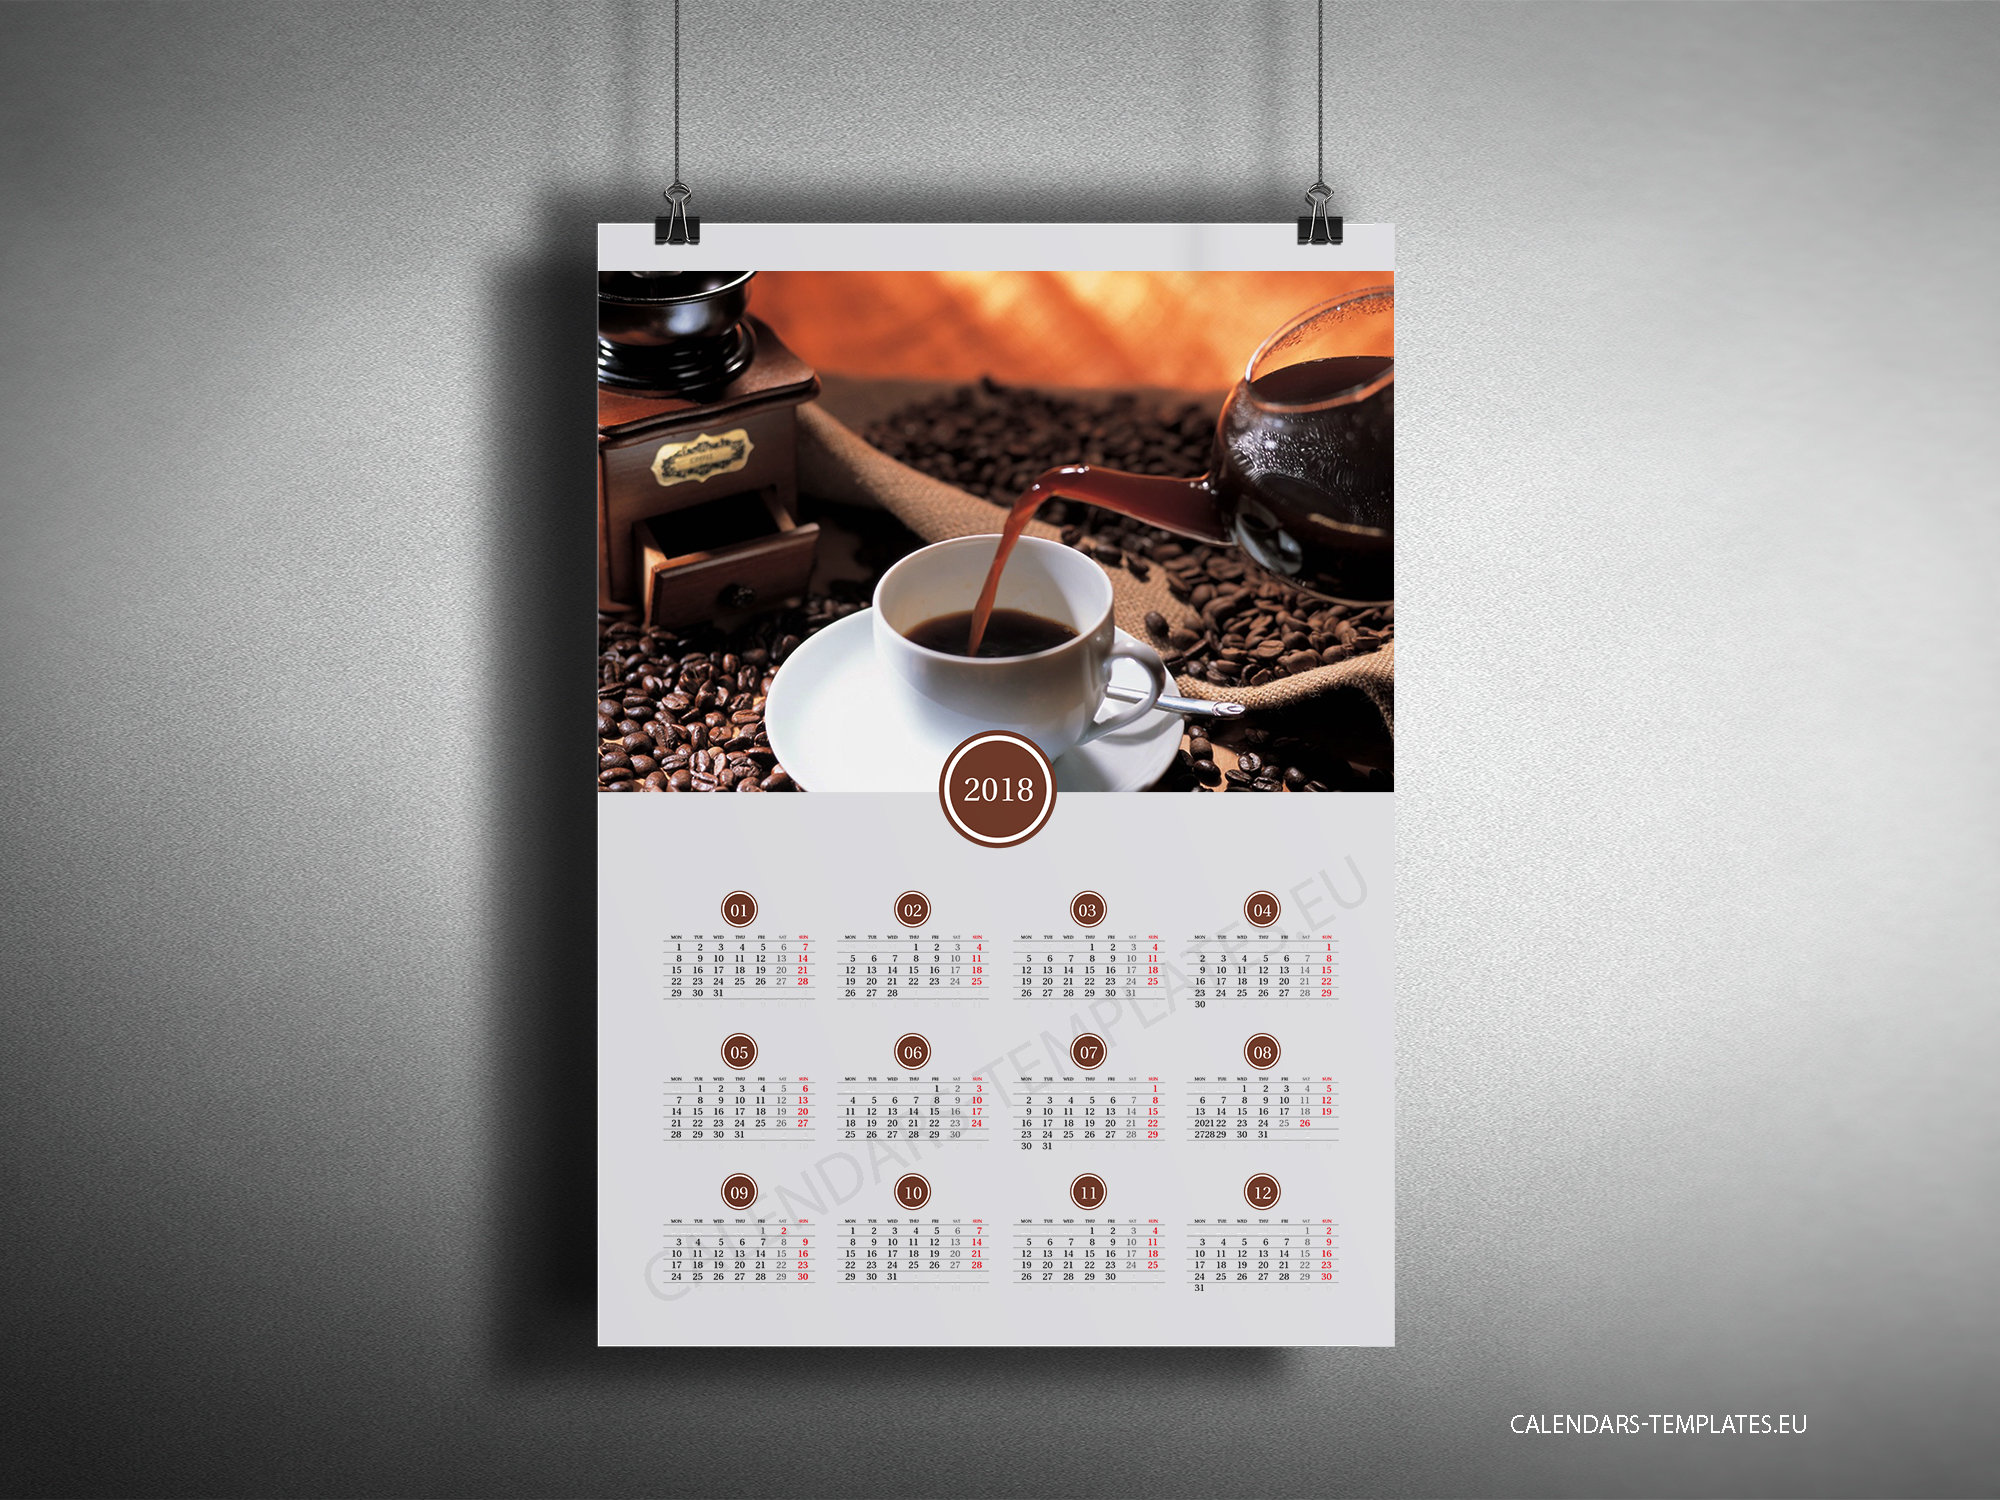 Big year calendar 2018 with image in PDF format. Yearly wall calendar